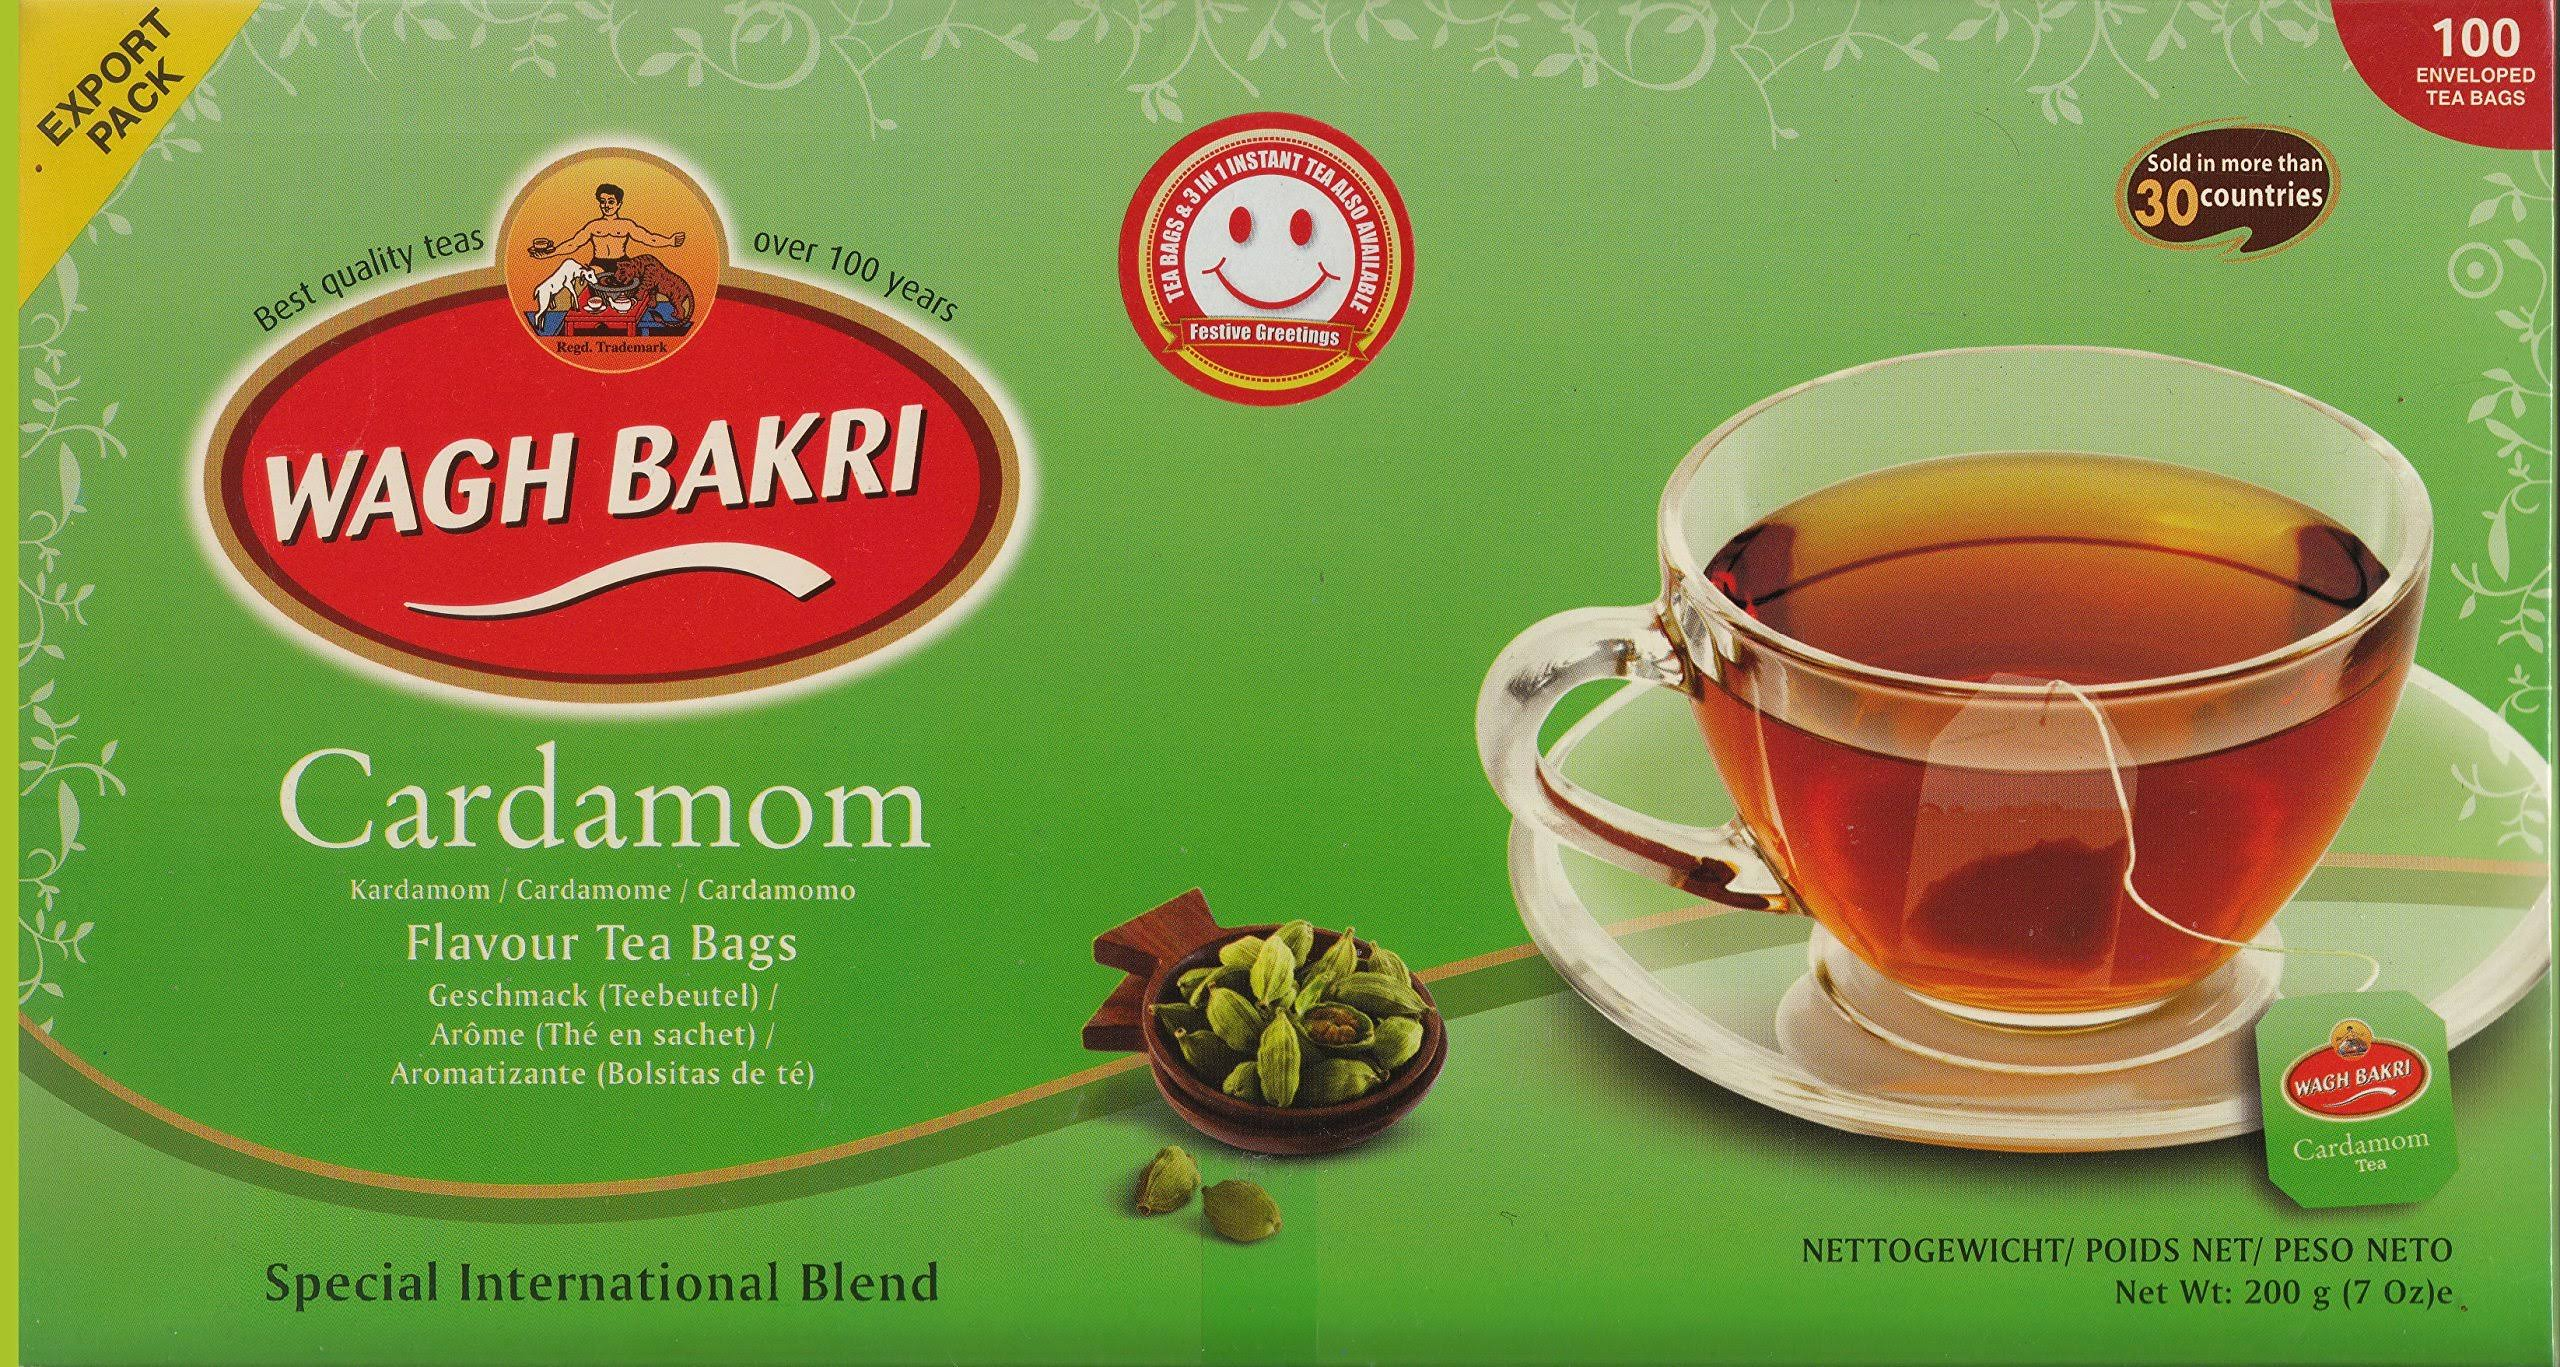 Wagh Bakri Cardamom Natural Flavour Tea Bags 100 Enveloped